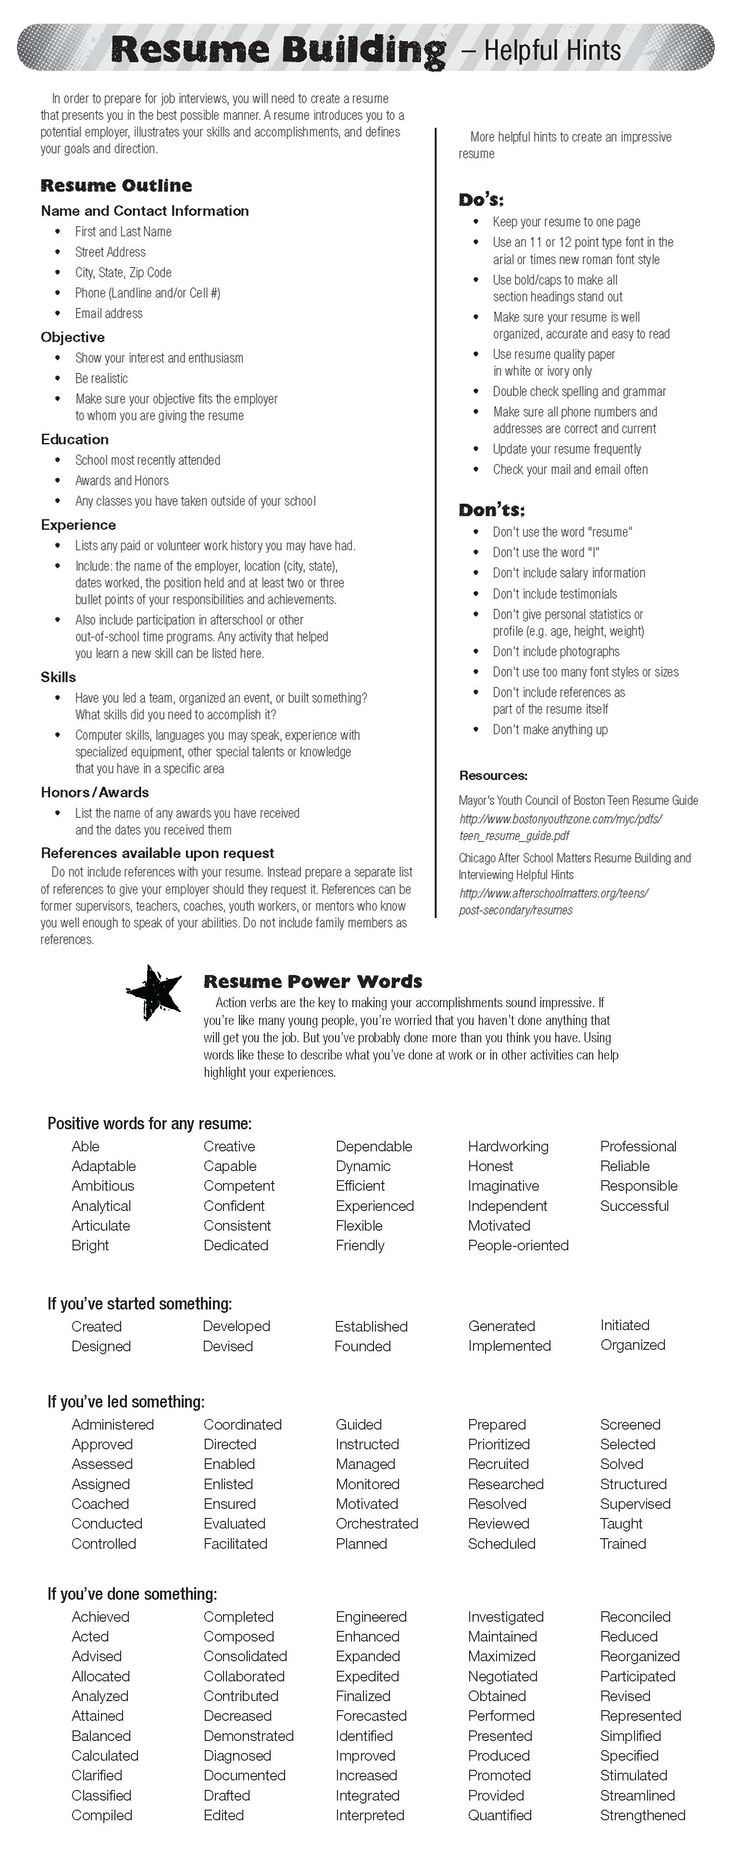 Picnictoimpeachus  Ravishing  Ideas About Resume On Pinterest  Cv Format Resume Cv And  With Fascinating  Ideas About Resume On Pinterest  Cv Format Resume Cv And Resume Templates With Delectable Dental Hygiene Resume Sample Also Manufacturing Manager Resume In Addition Architecture Resume Sample And How Do You Make A Resume On Word As Well As Resume To Cv Additionally Electronic Resume Definition From Pinterestcom With Picnictoimpeachus  Fascinating  Ideas About Resume On Pinterest  Cv Format Resume Cv And  With Delectable  Ideas About Resume On Pinterest  Cv Format Resume Cv And Resume Templates And Ravishing Dental Hygiene Resume Sample Also Manufacturing Manager Resume In Addition Architecture Resume Sample From Pinterestcom